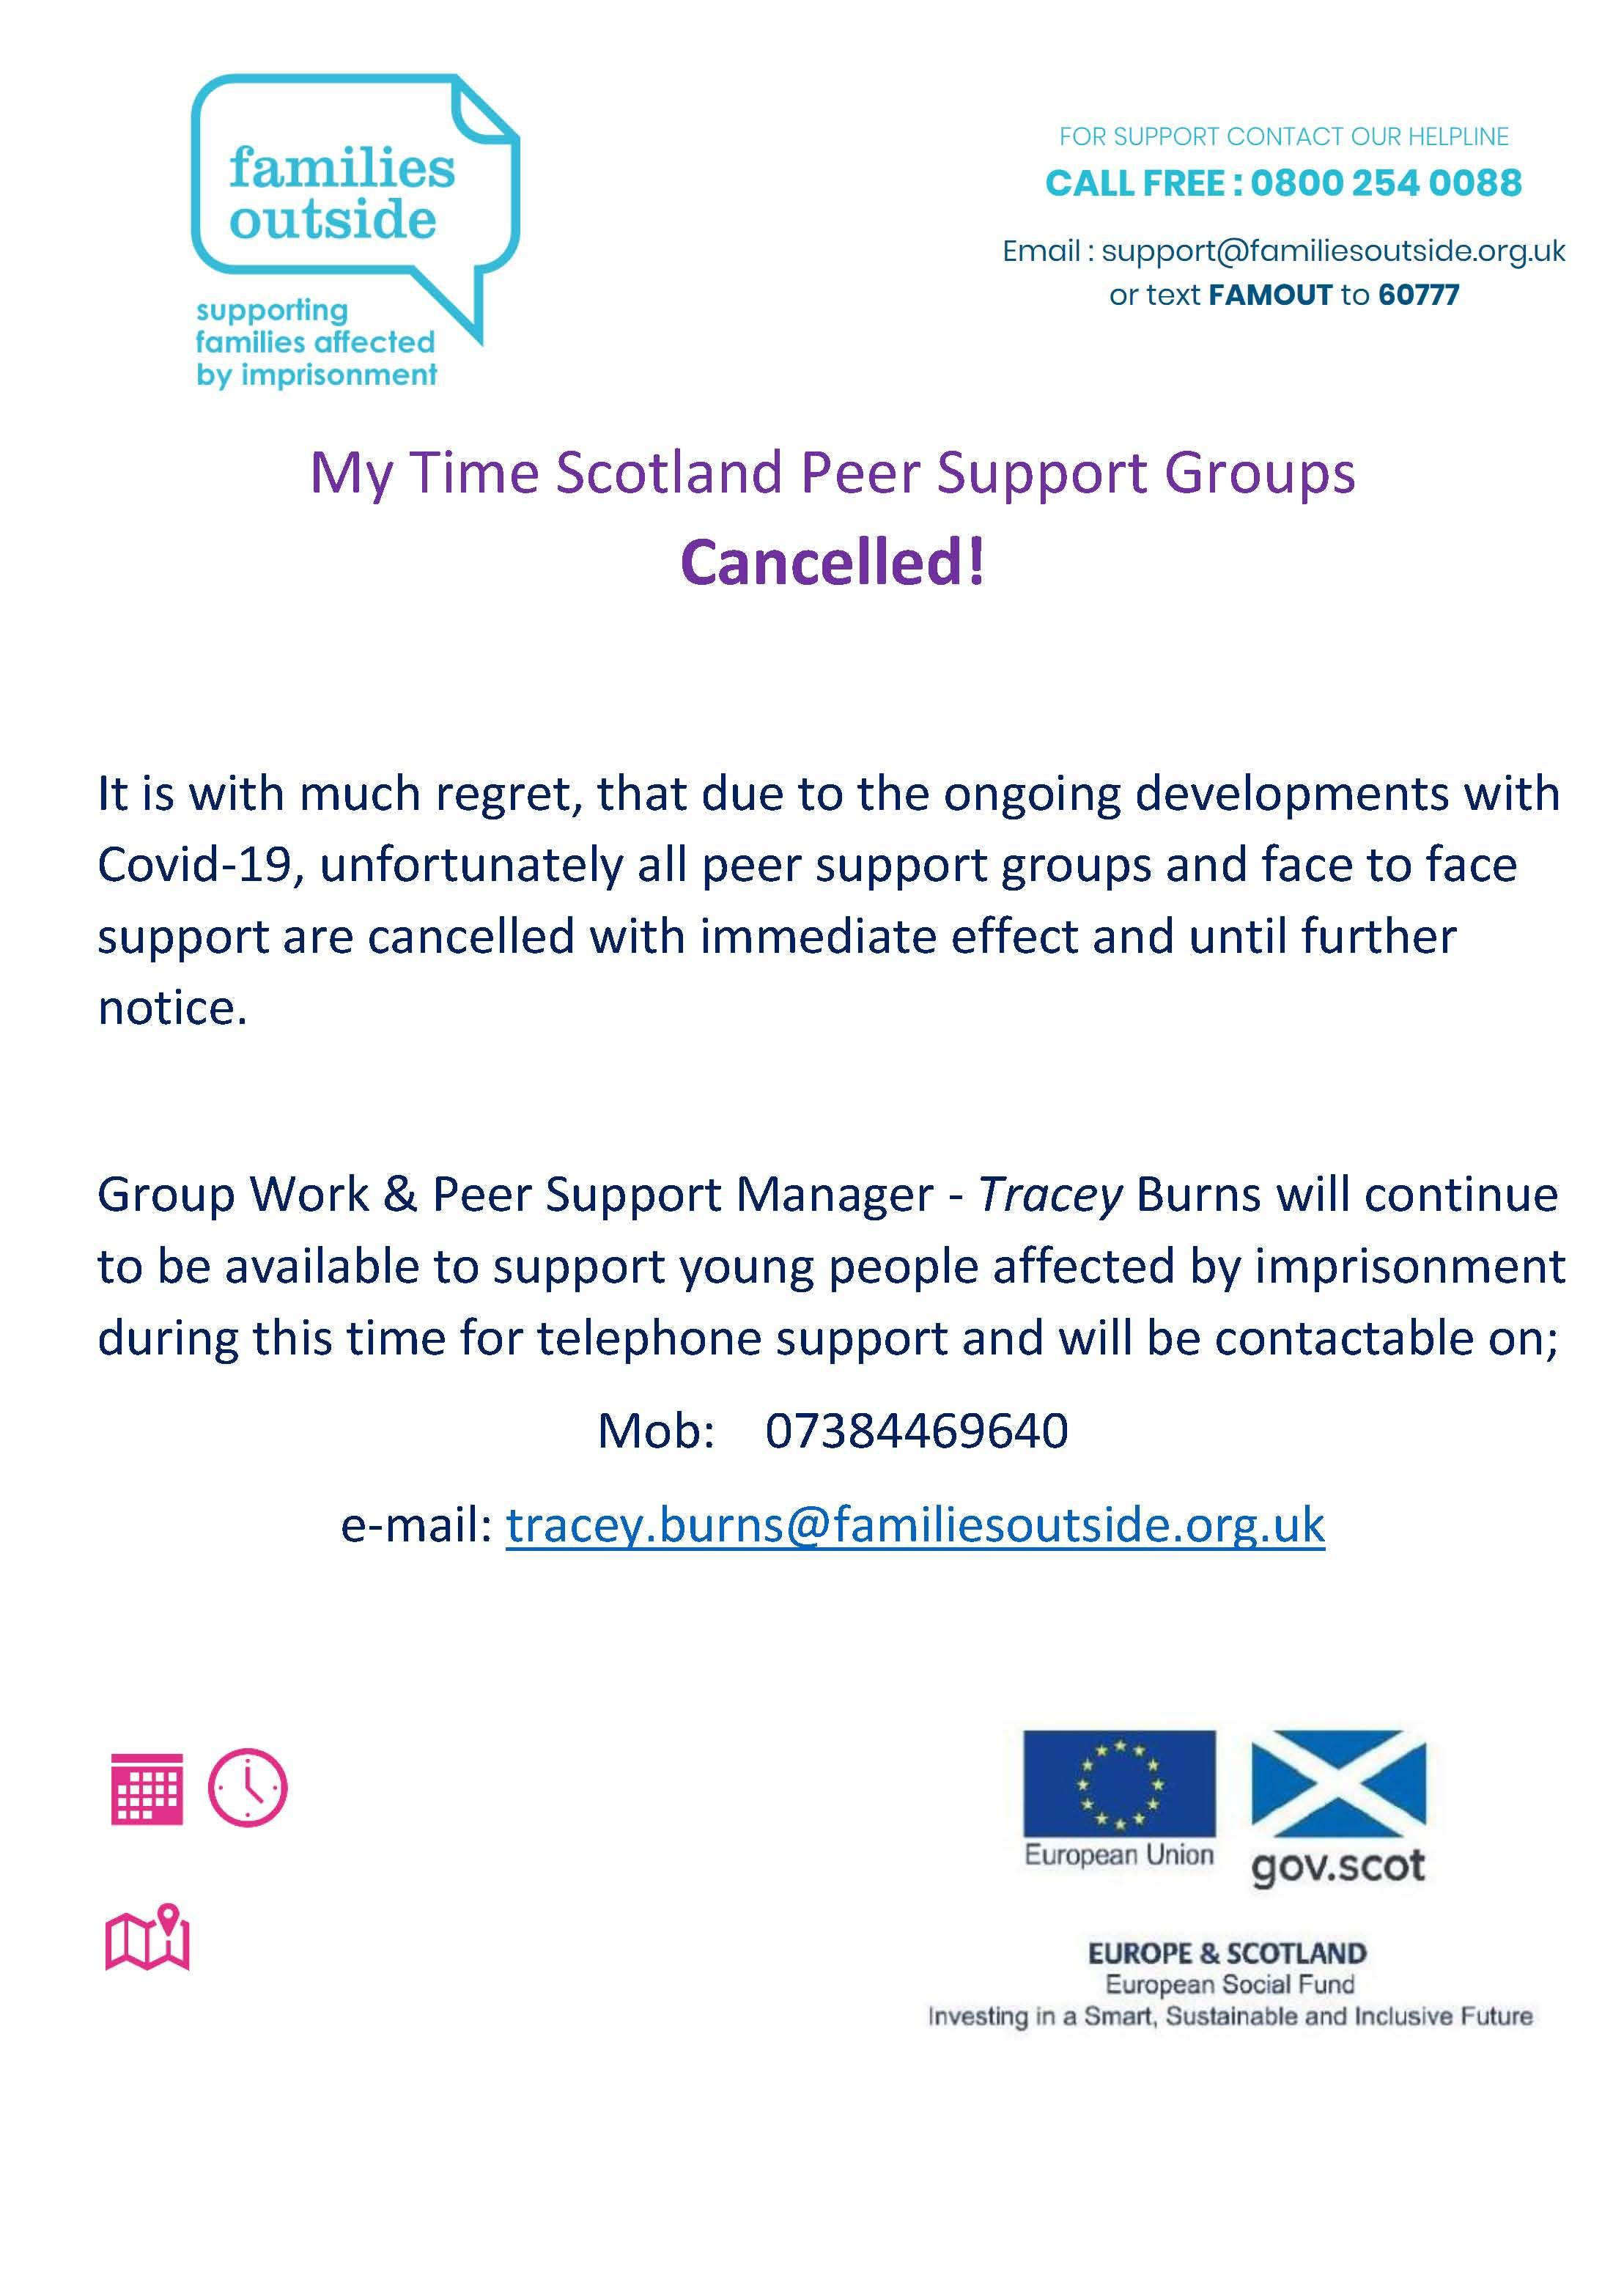 Families Outside Support Covid 19 Group Work   Peer Support Update